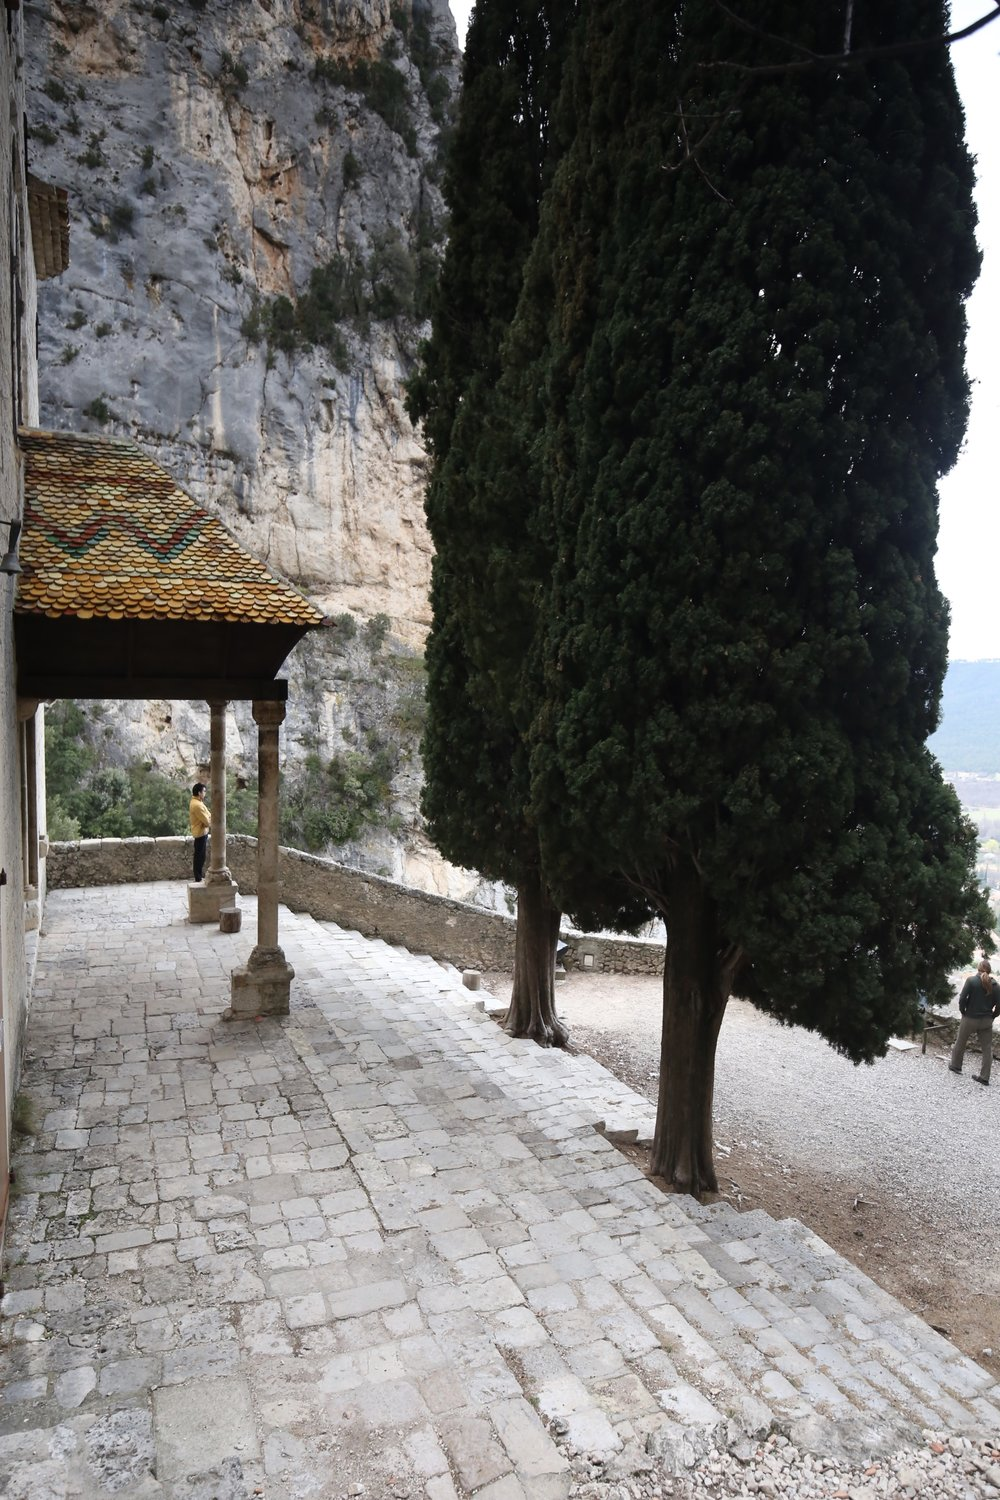 A mountain temple with standing cypress trees, in the Verdon Gorge.